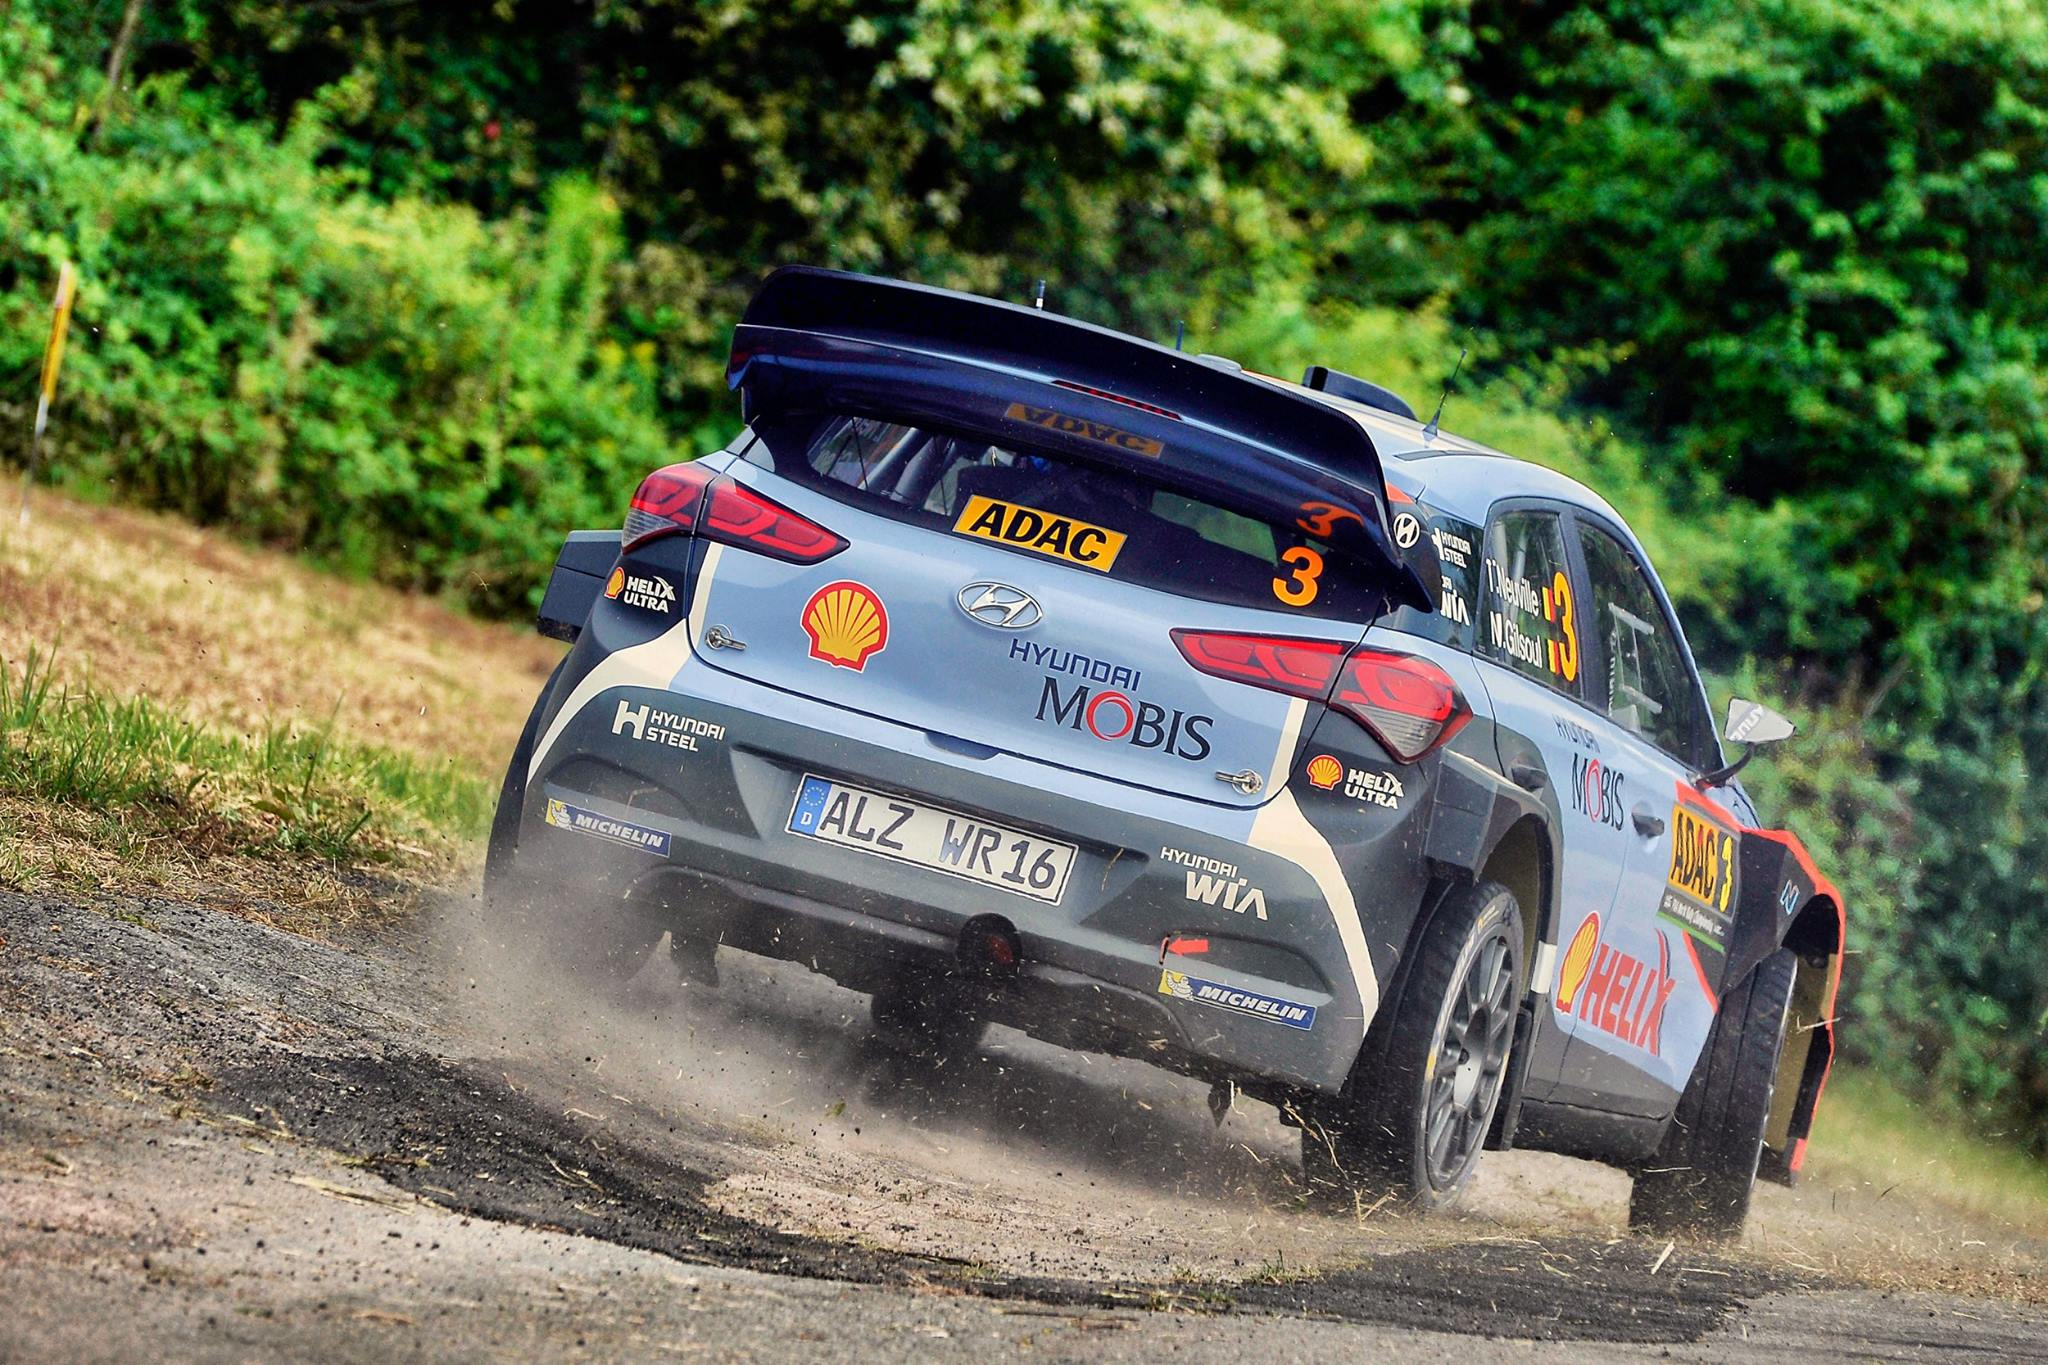 Wrc Ogier Breaks Winless Spell To Win Rally Deutschland